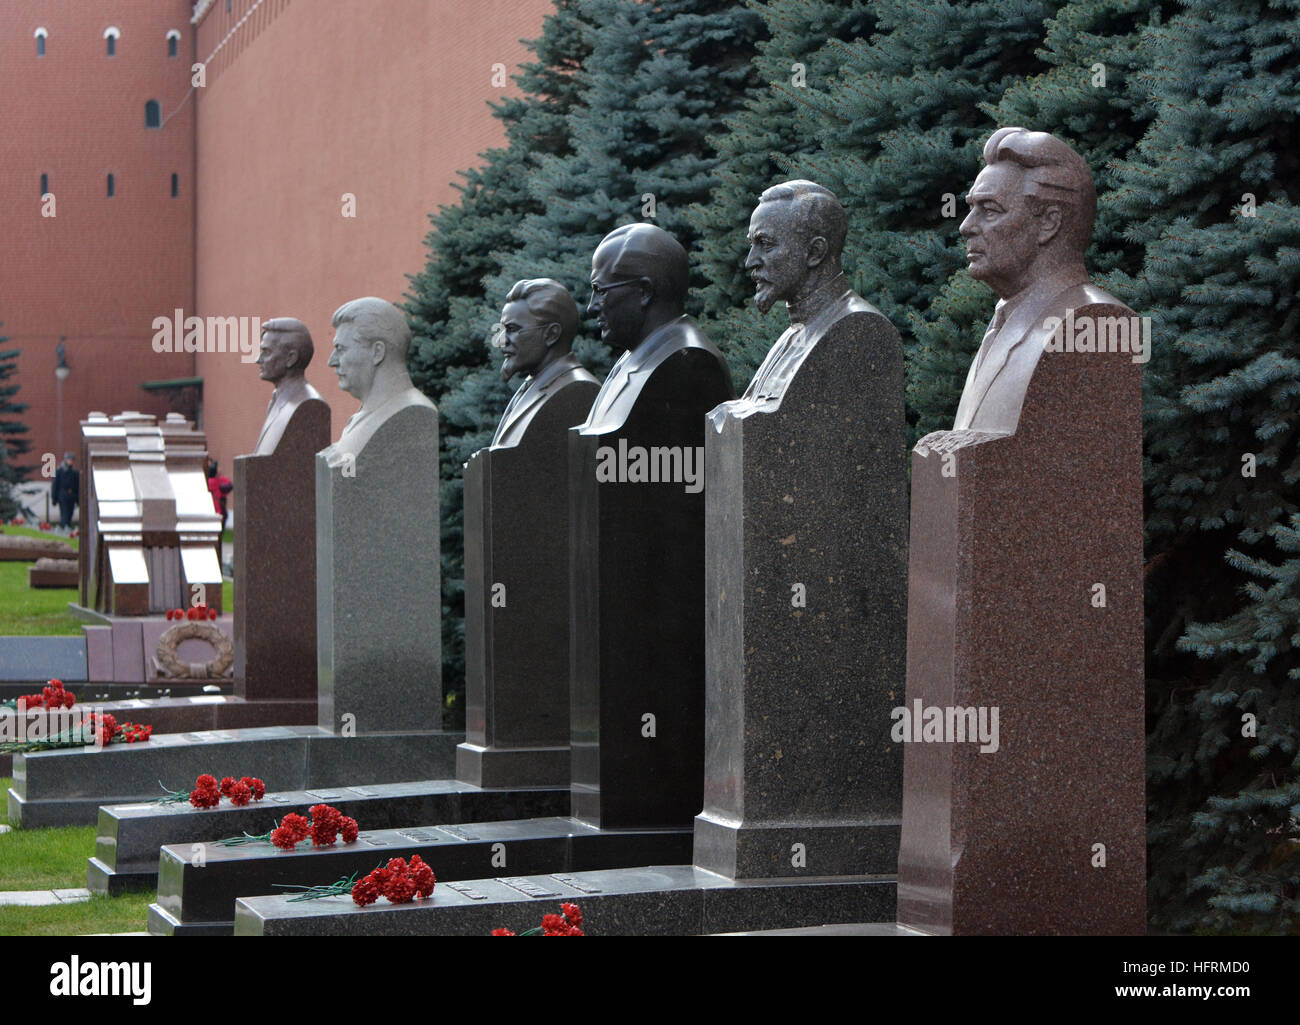 busts of famous communist leaders including stalin and